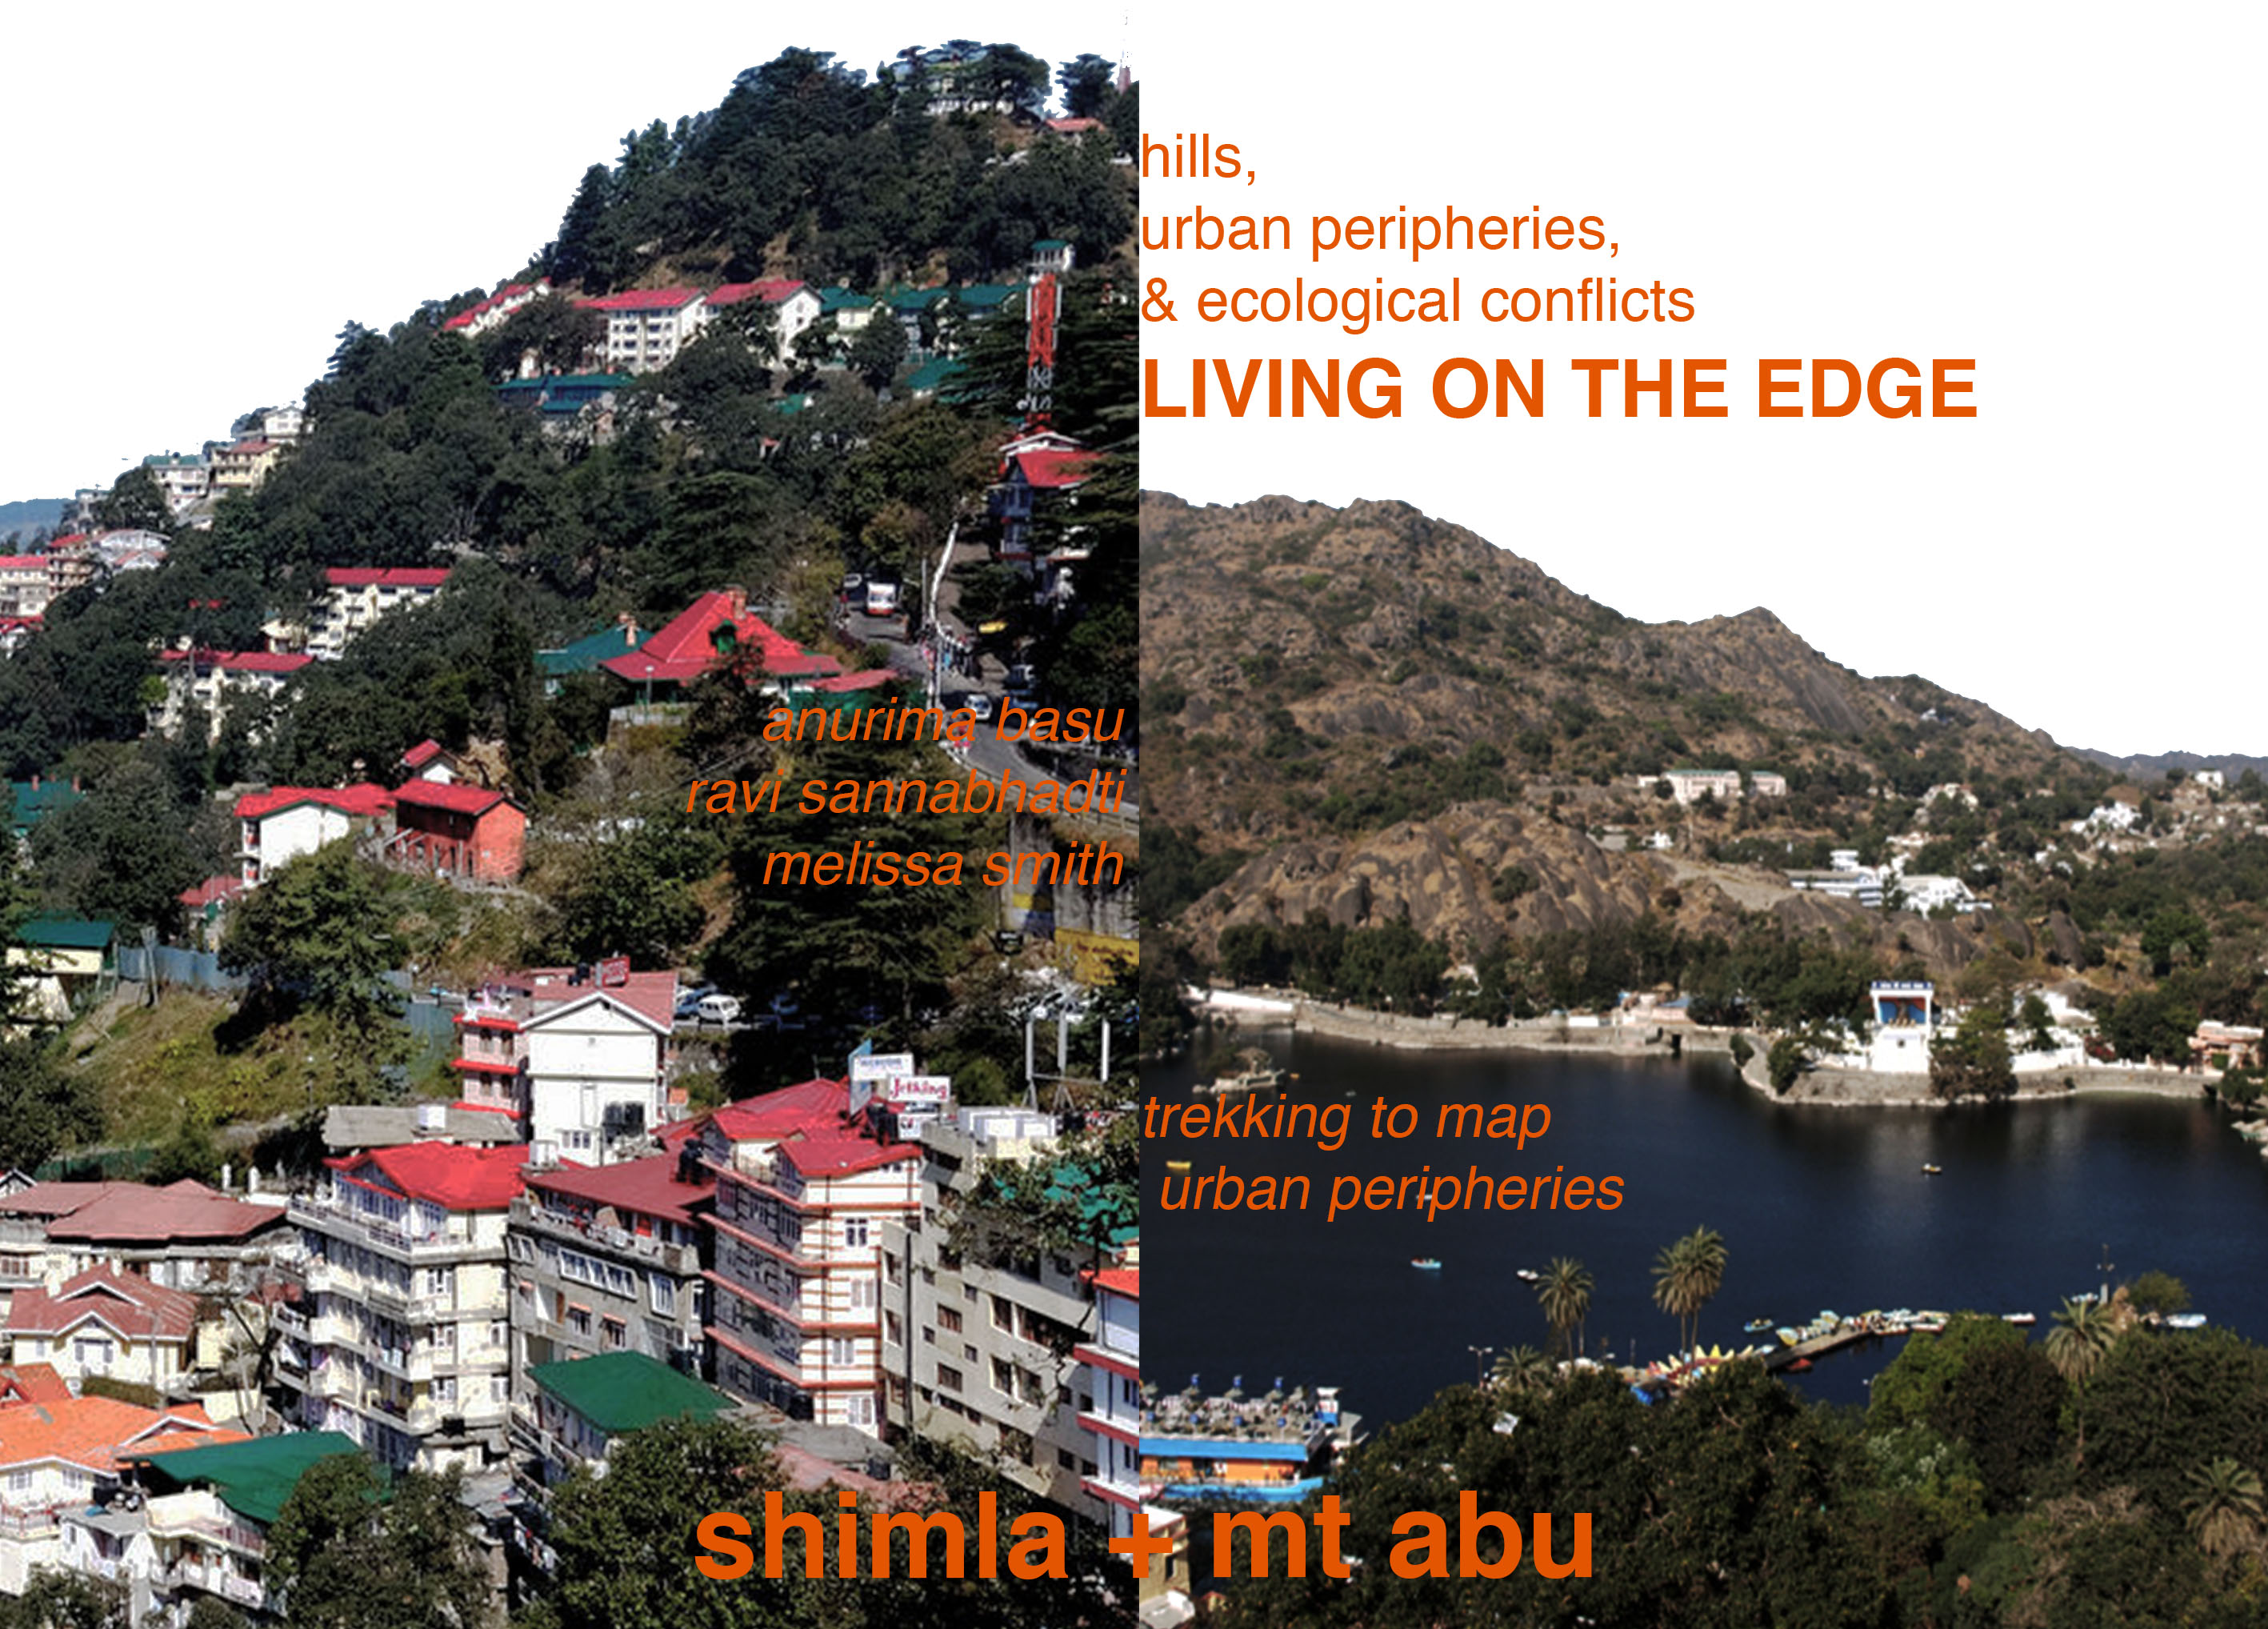 LIVING ON THE EDGE: HILLS, URBAN PERIPHERIES AND ECOLOGICAL CONFLICTS